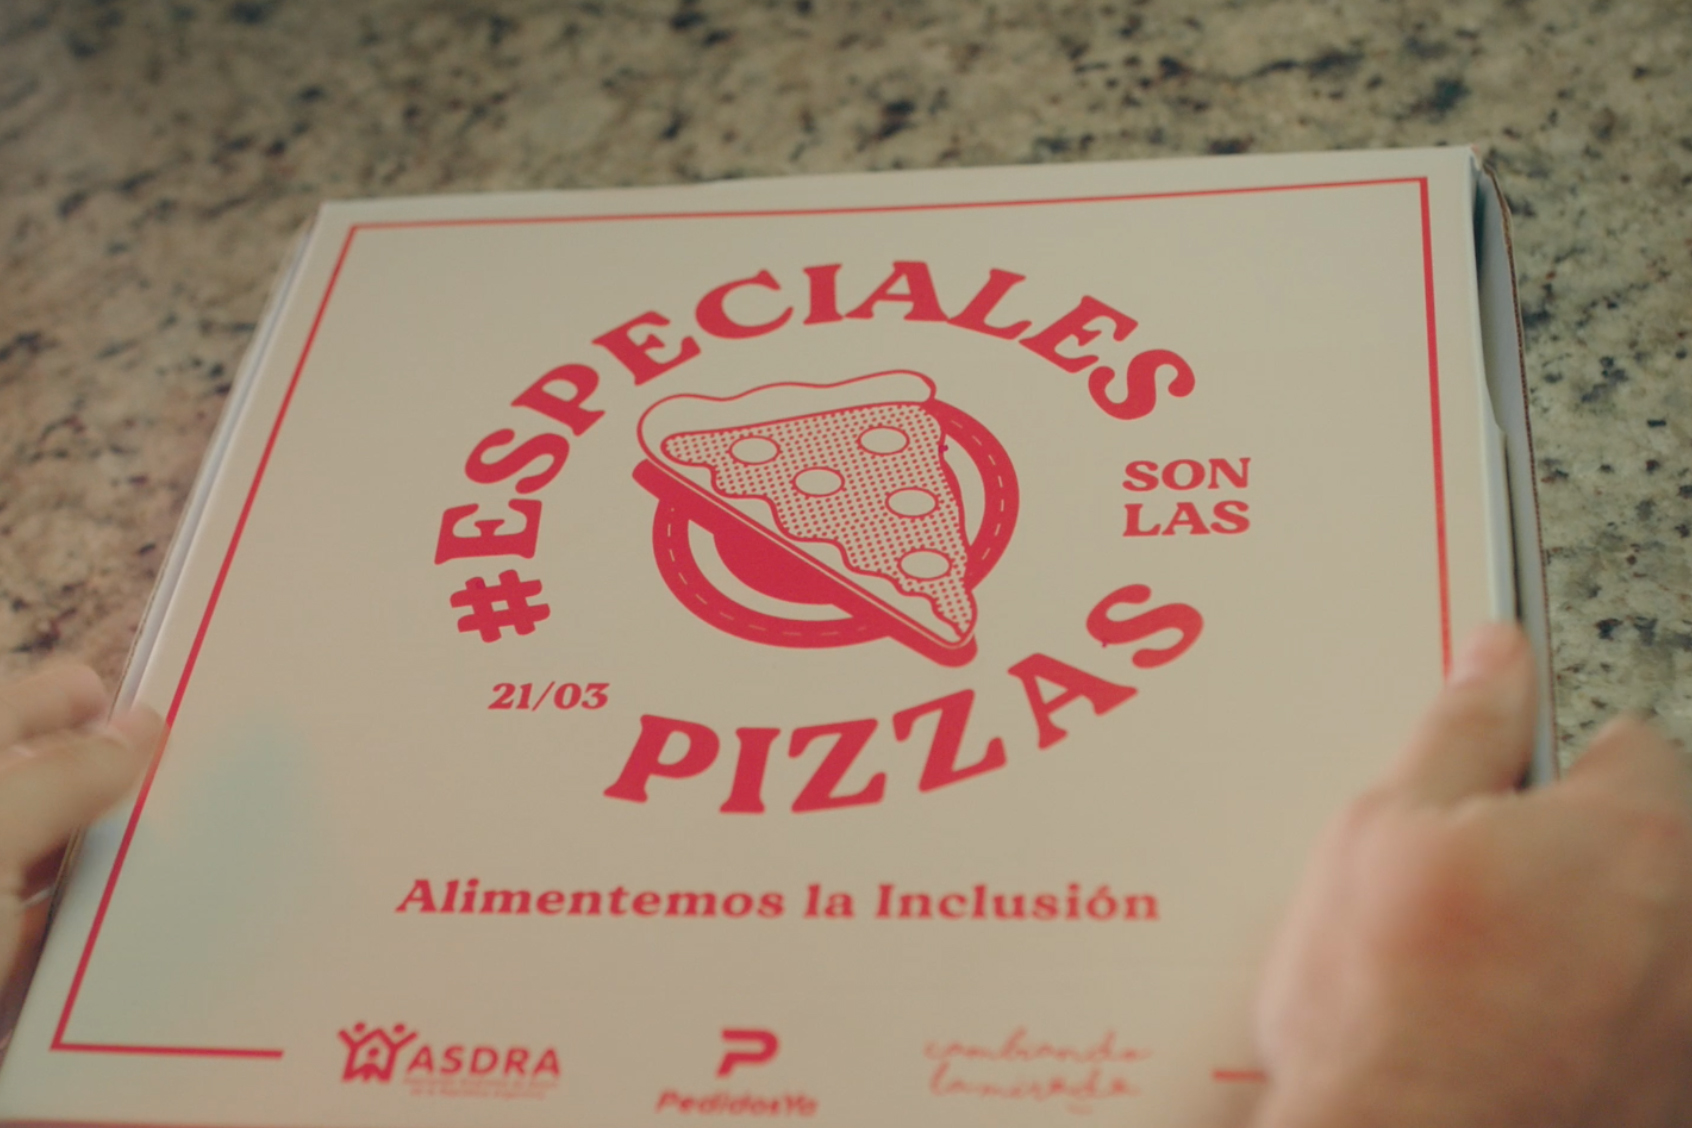 Argentine Down Syndrome Association: Pizzas are the Specials